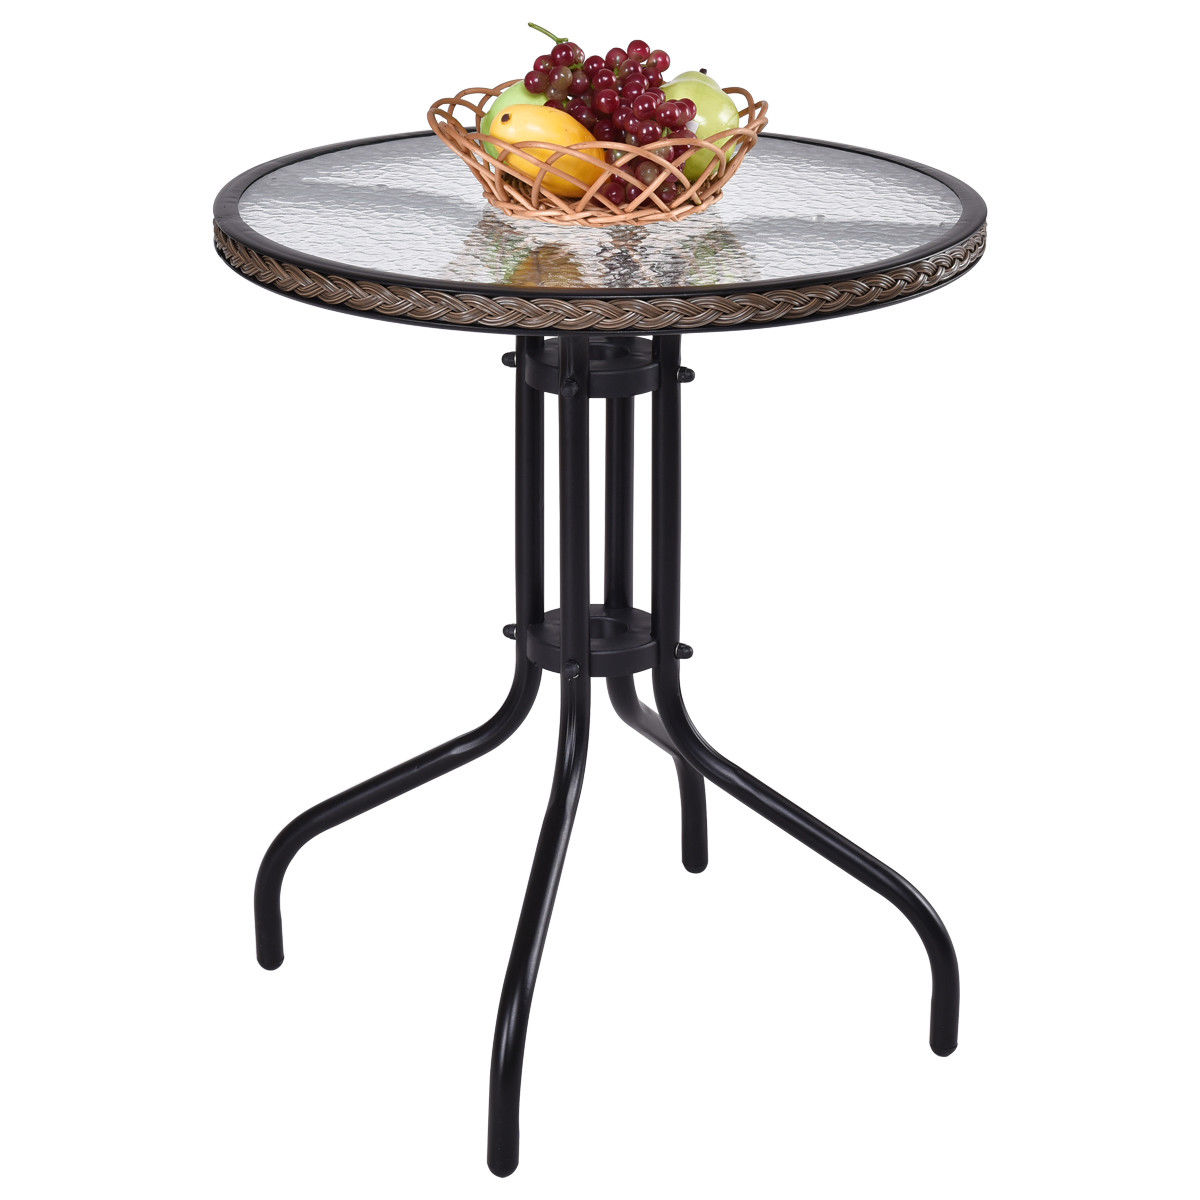 Gymax Steel Frame Glass Top Patio Round Table Dining Table Patio Furniture